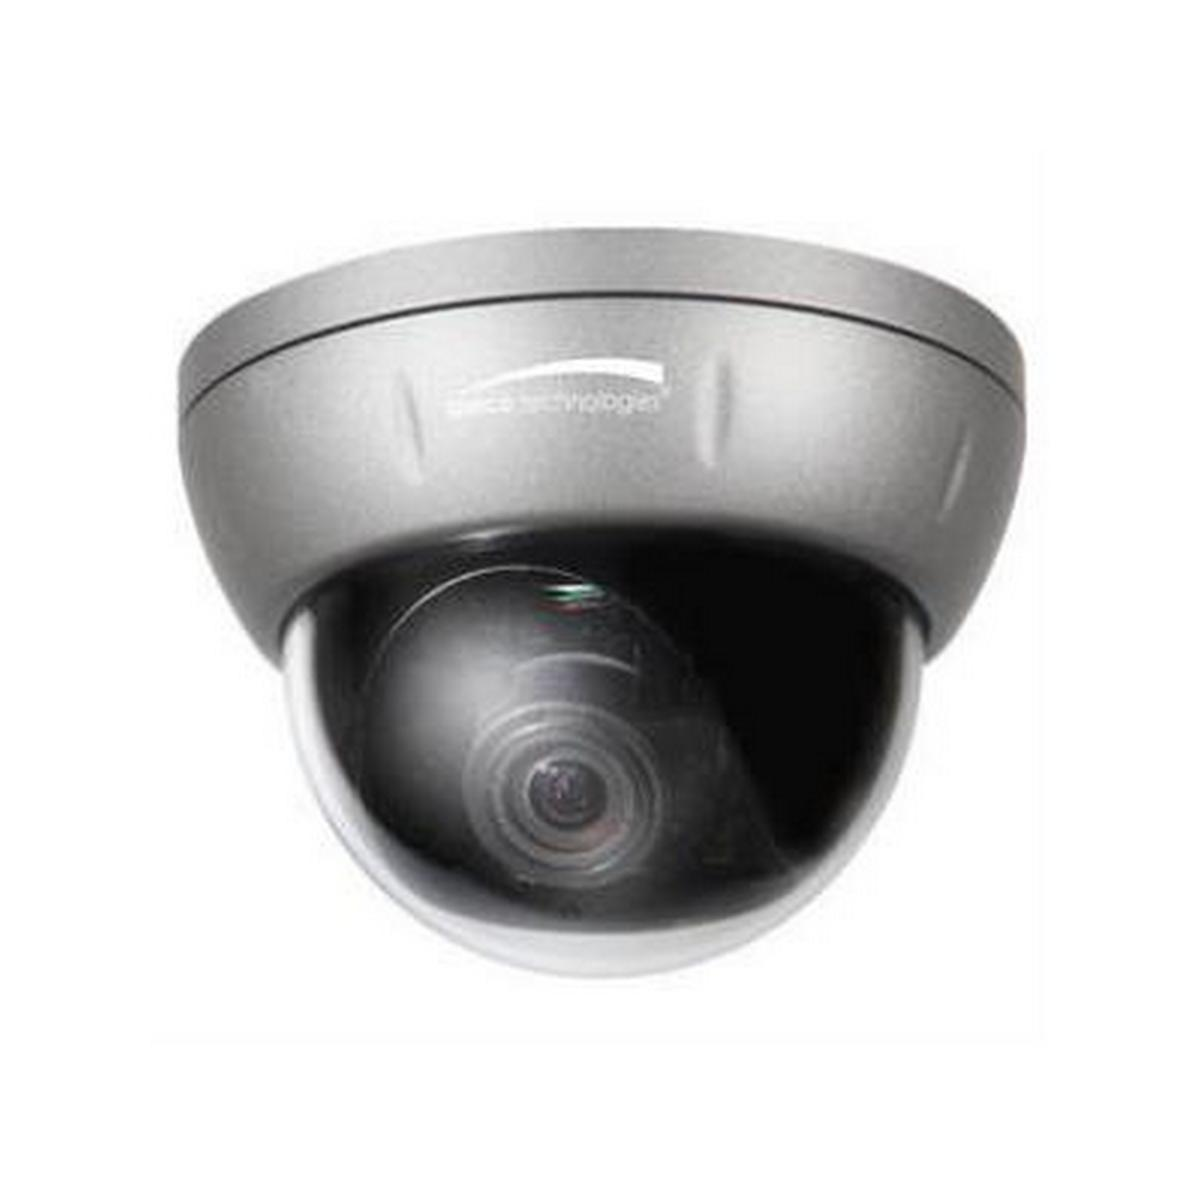 B-Stock Intensifier 9-22mm Dome Camera